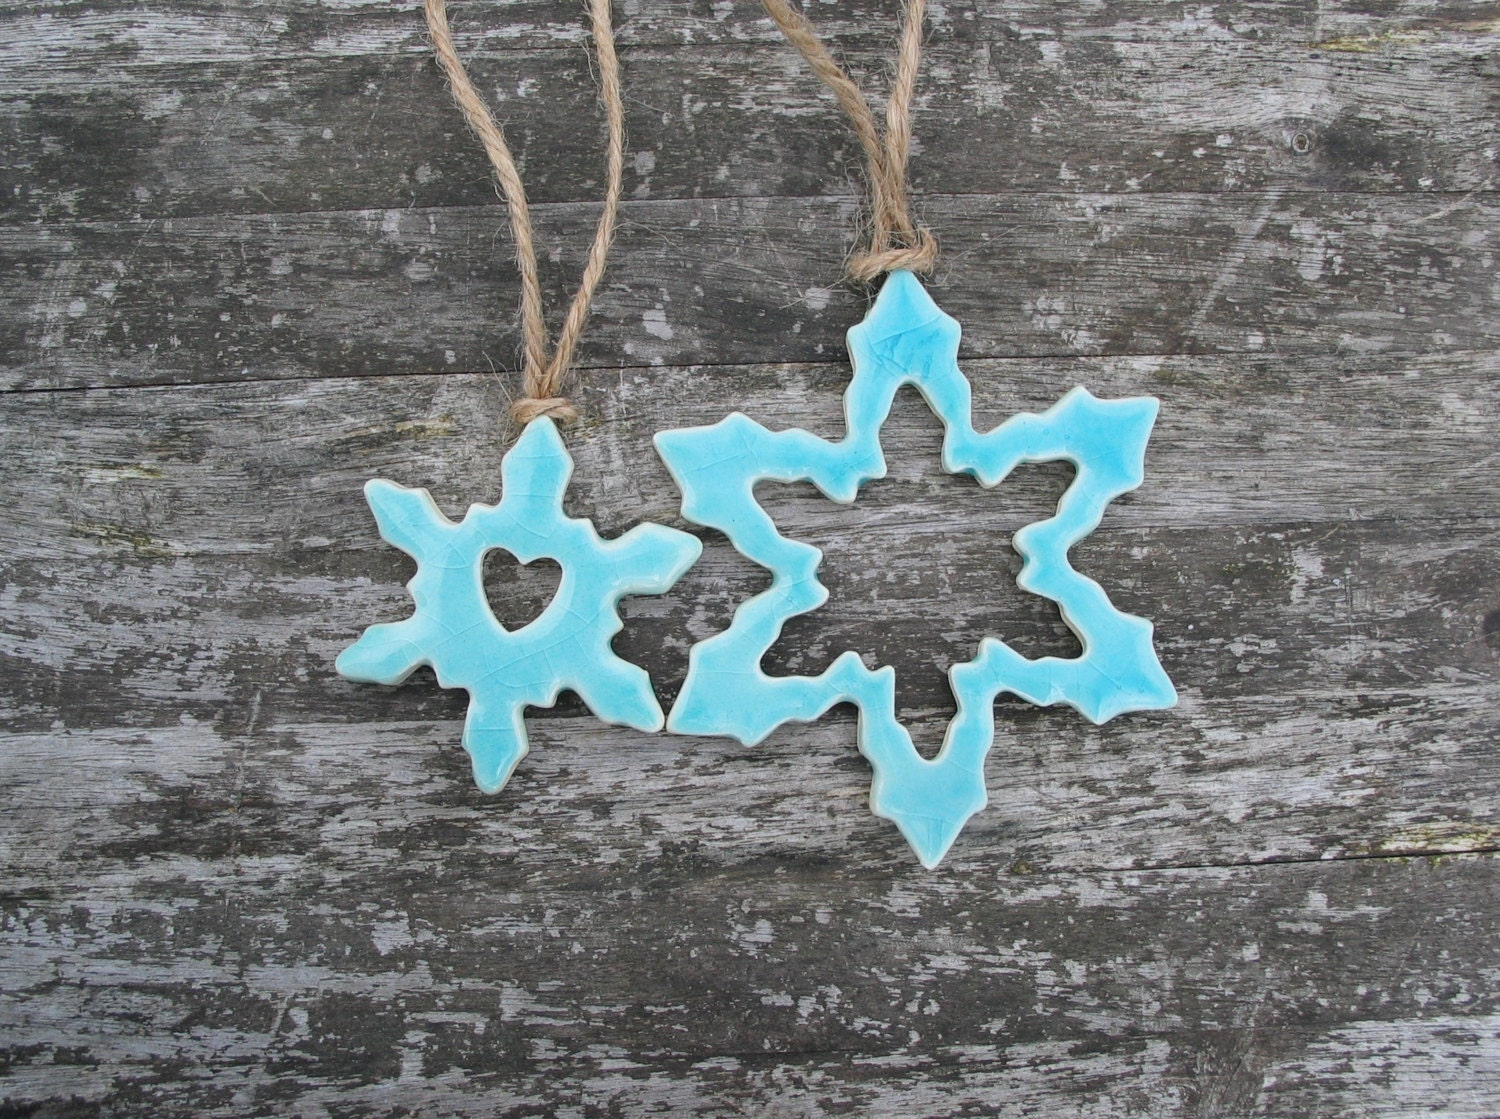 Snowflakes Winter Ornaments turquoise Ceramic Christmas decorations hemp twine - damsontreepottery